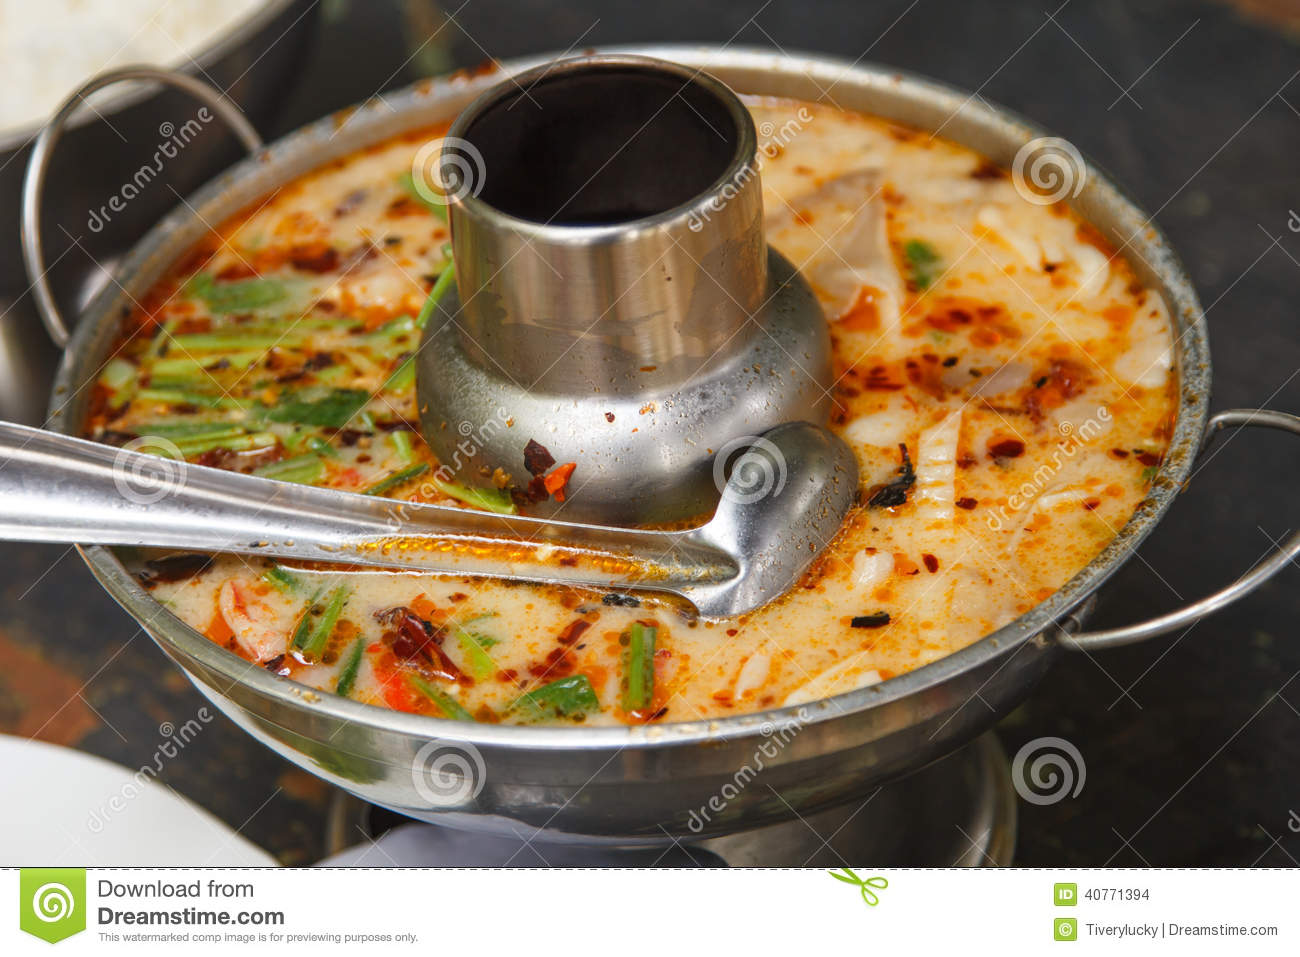 Hot And Sour Soup Stock Photo - Image: 40771394